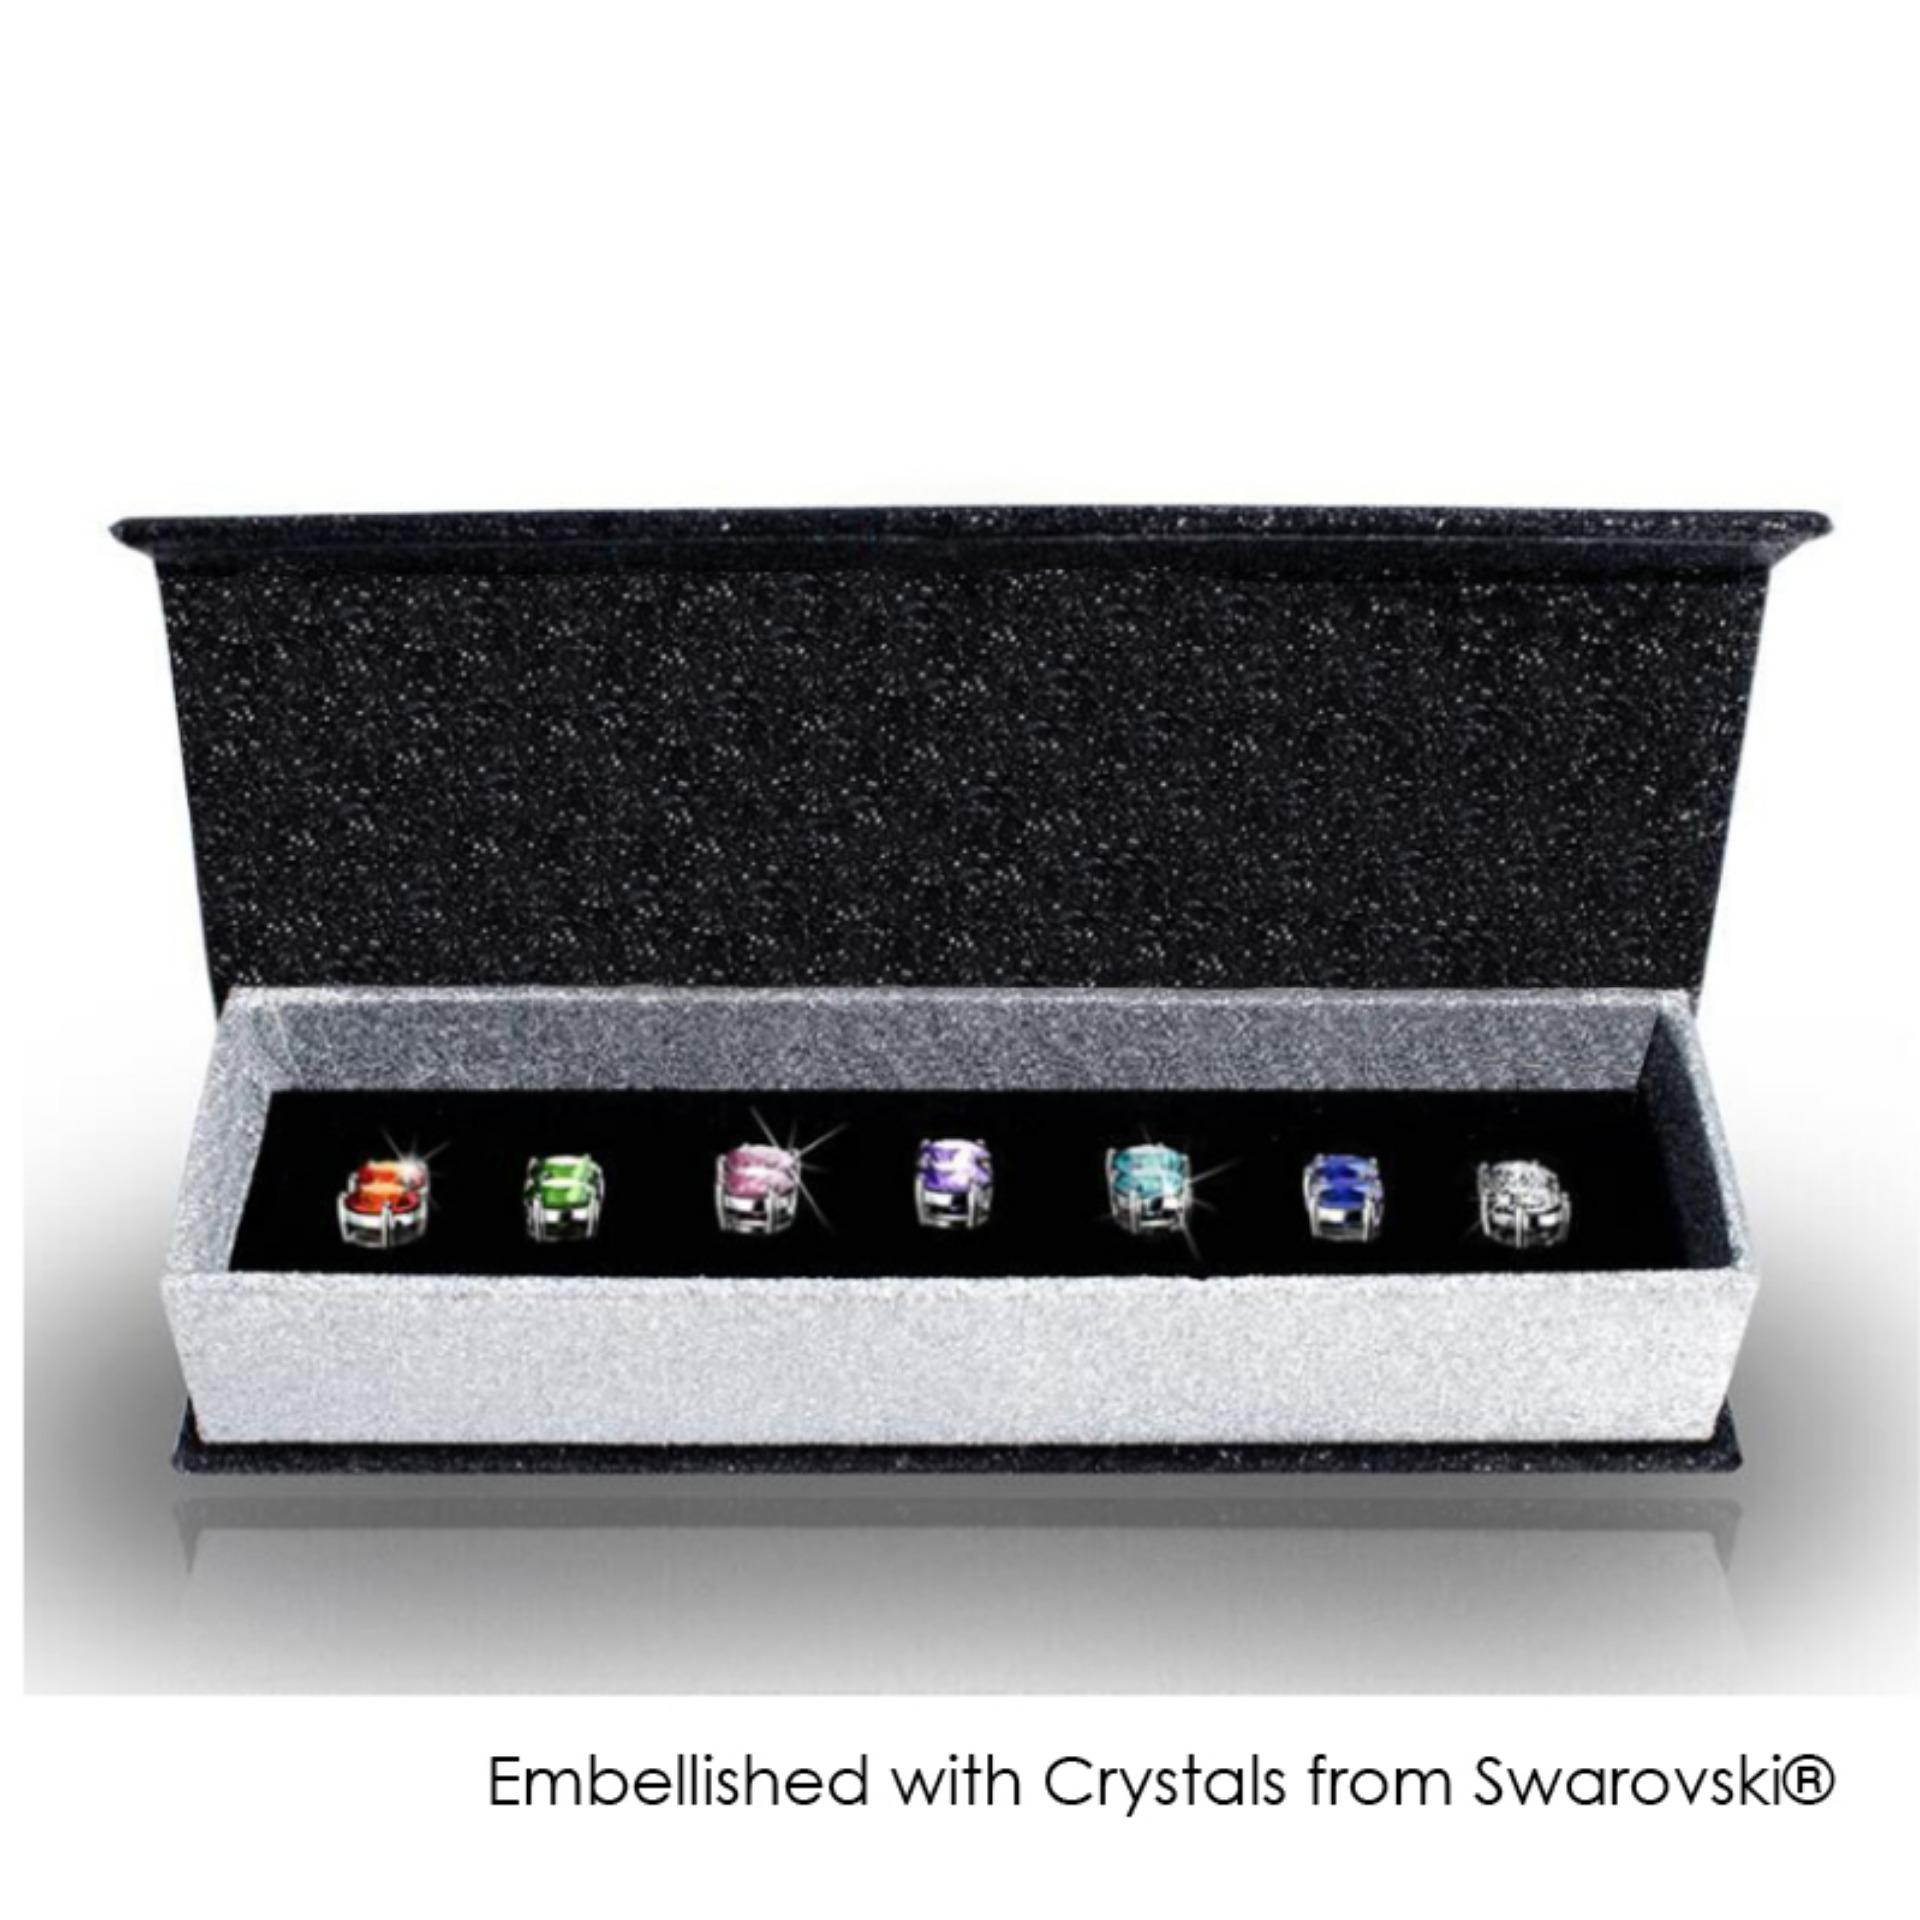 4438ae0b0465 7 Days Earrings Set - Embellished with Crystals from Swarovski®